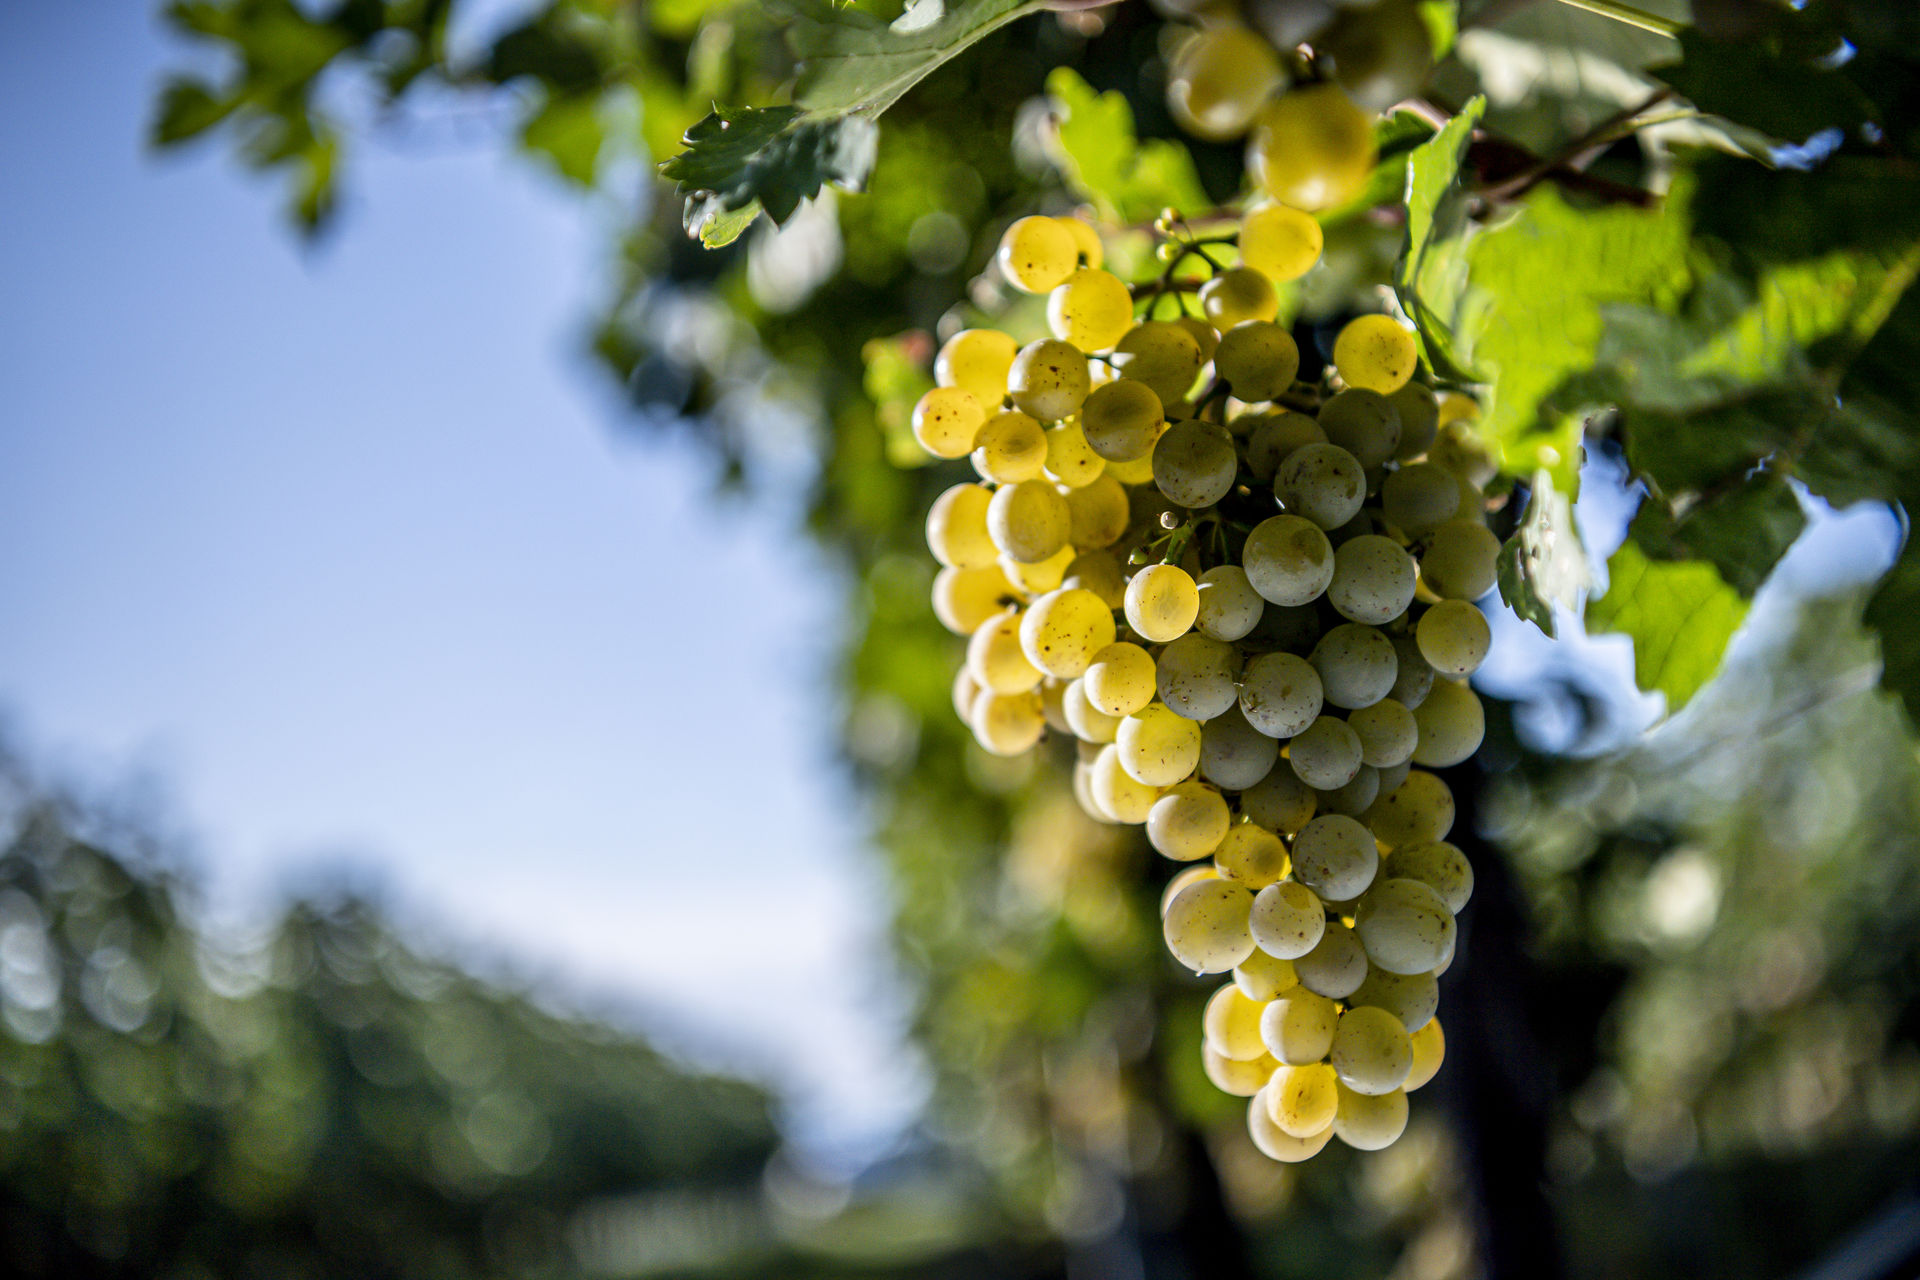 A picture shows Grüner Veltliner grapes on the vine.